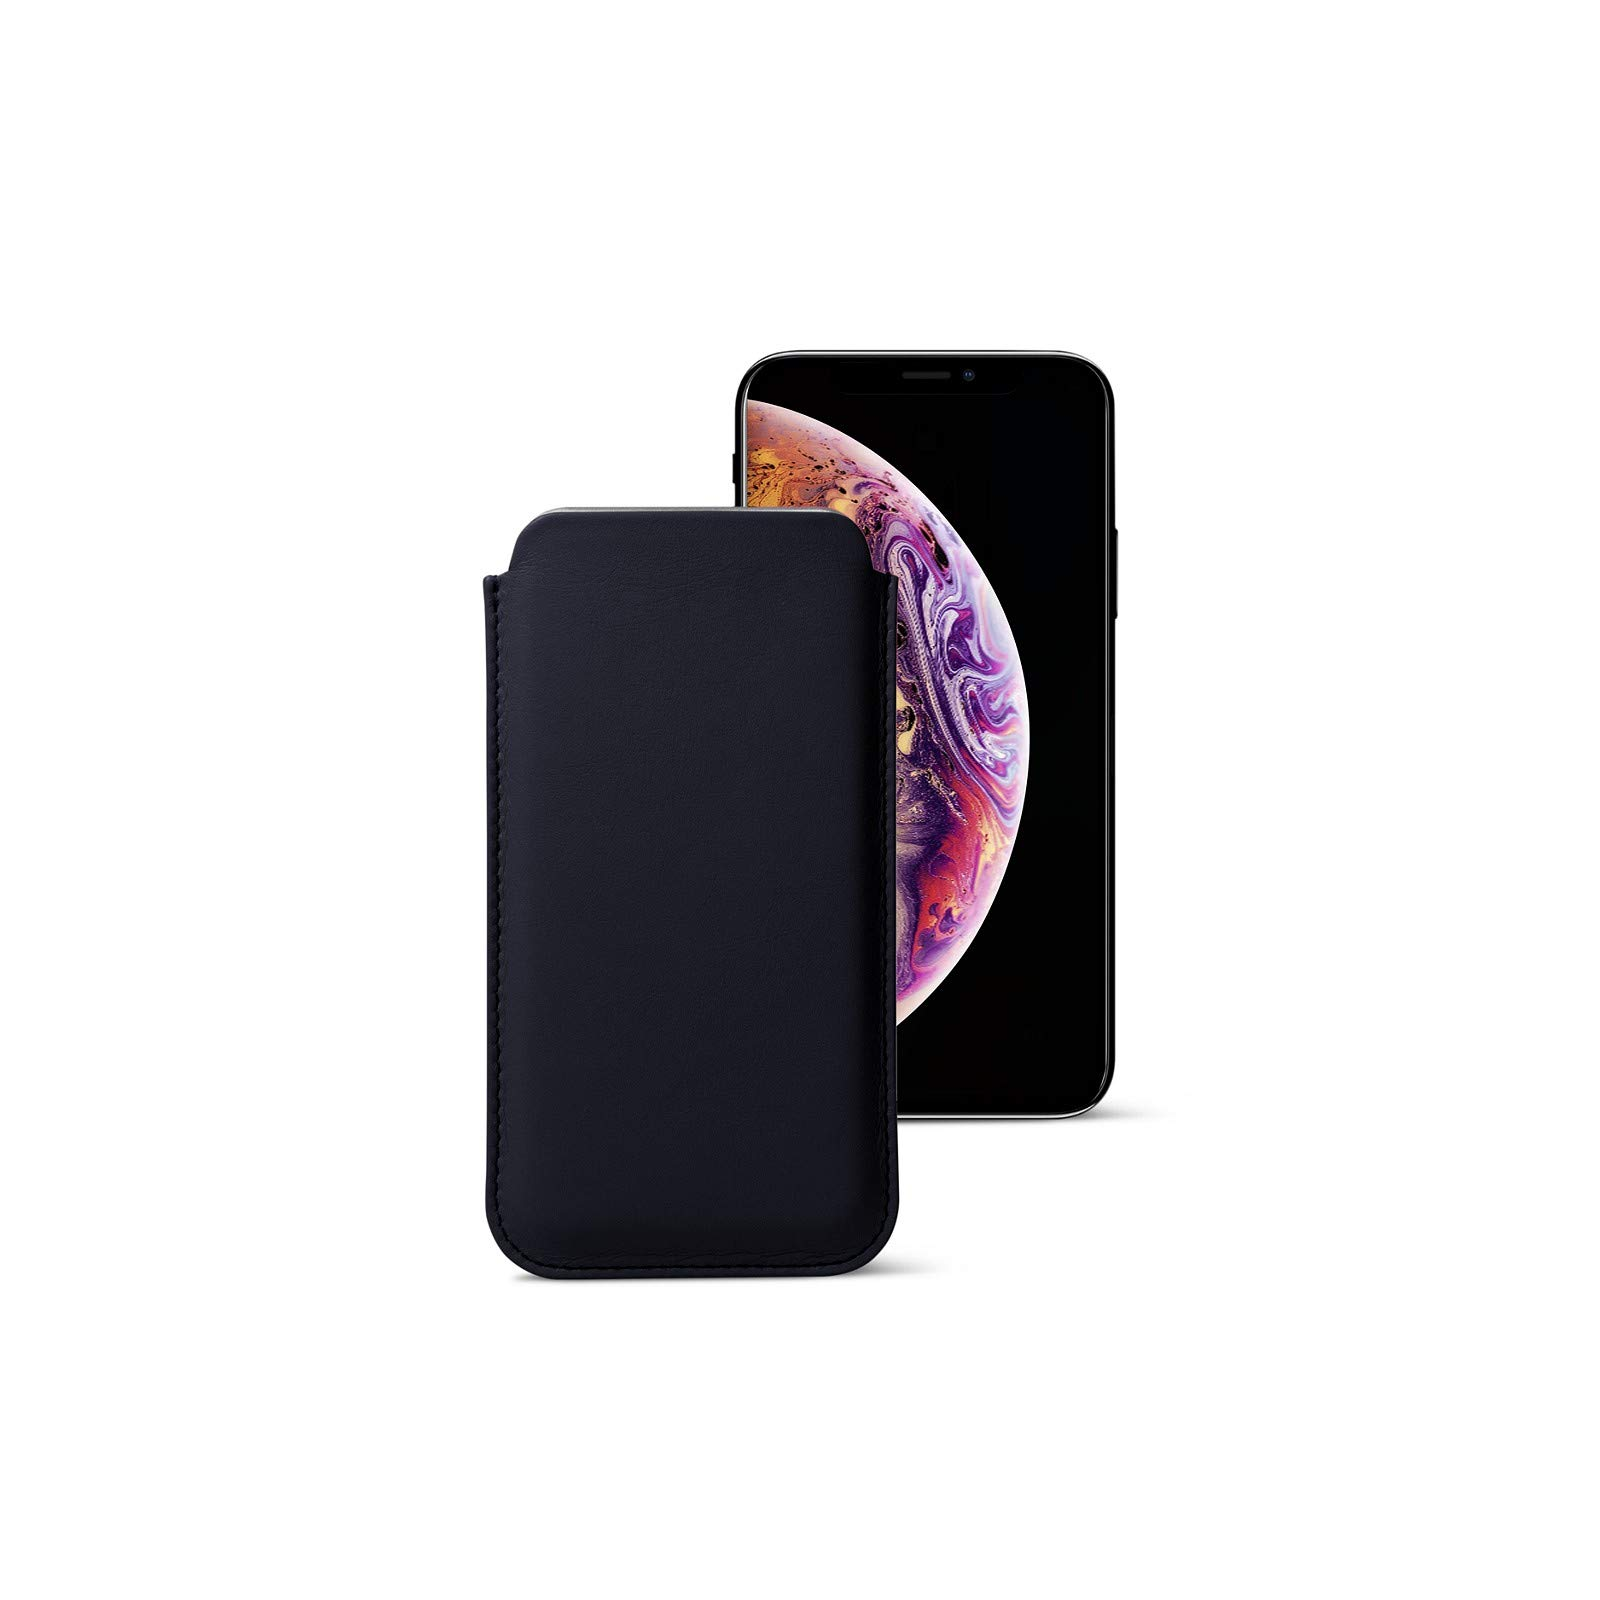 Lucrin - Classic Case Cover Sleeve Compatible with iPhone 11 Pro/iPhone Xs/iPhone X and Wireless Charging - Navy Blue - Genuine Leather by Lucrin